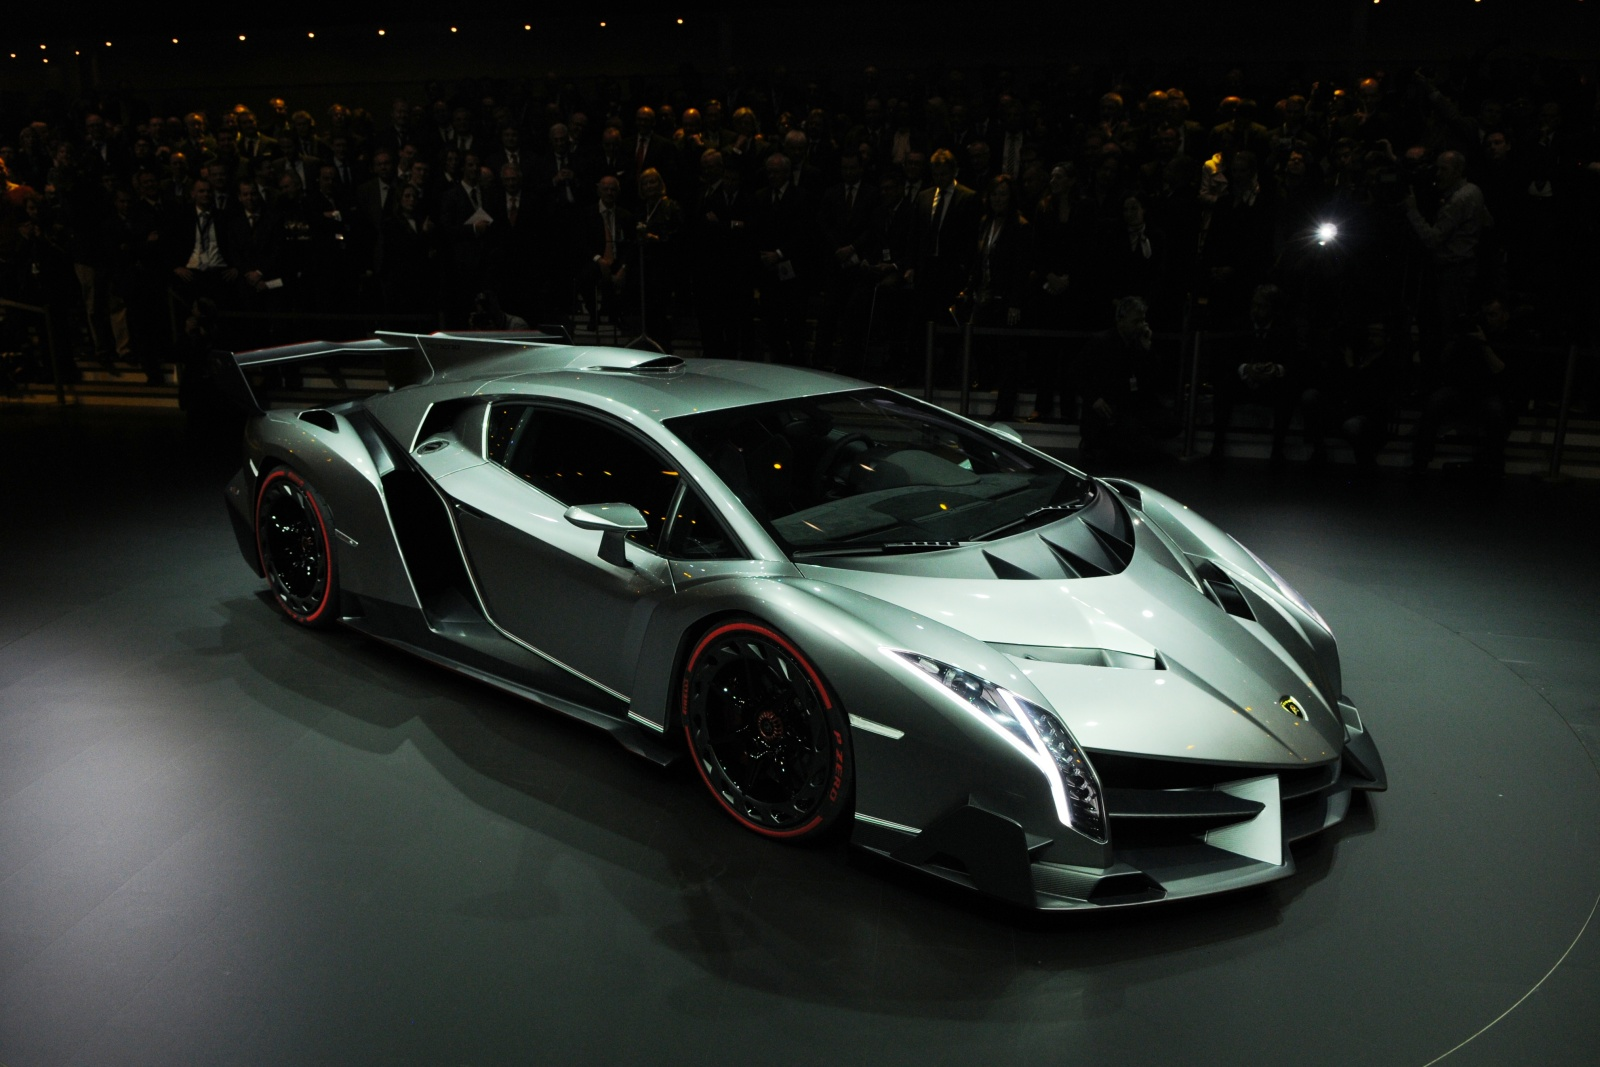 Mercedes Car Wallpapers For Windows 7 Cars Hd Wallpapers First Look Lamborghini Veneno Best Hd